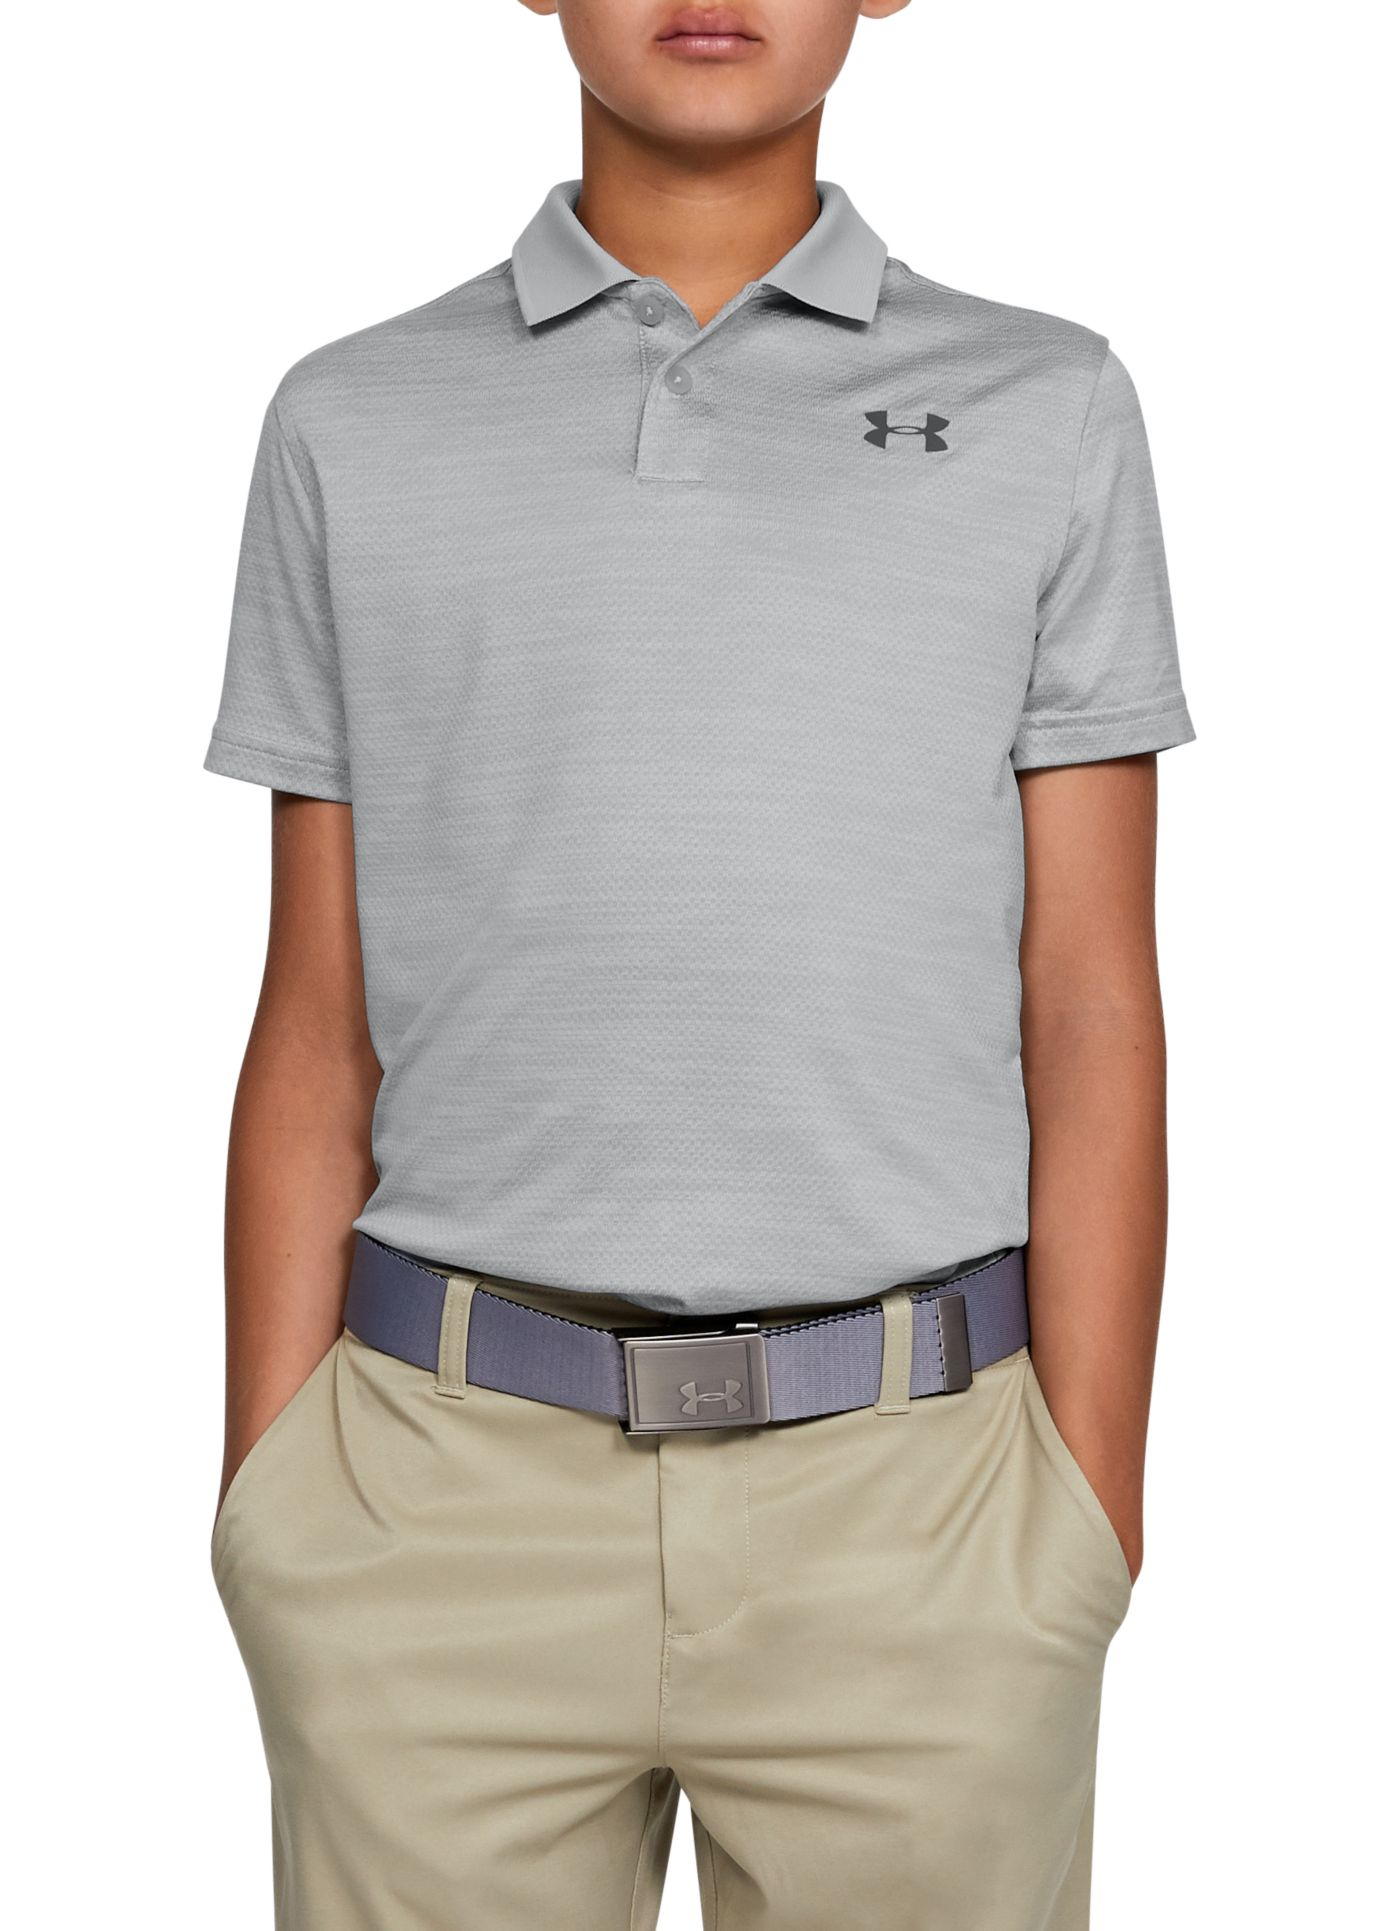 Under Armour Boys' Performance 2.0 Golf Polo